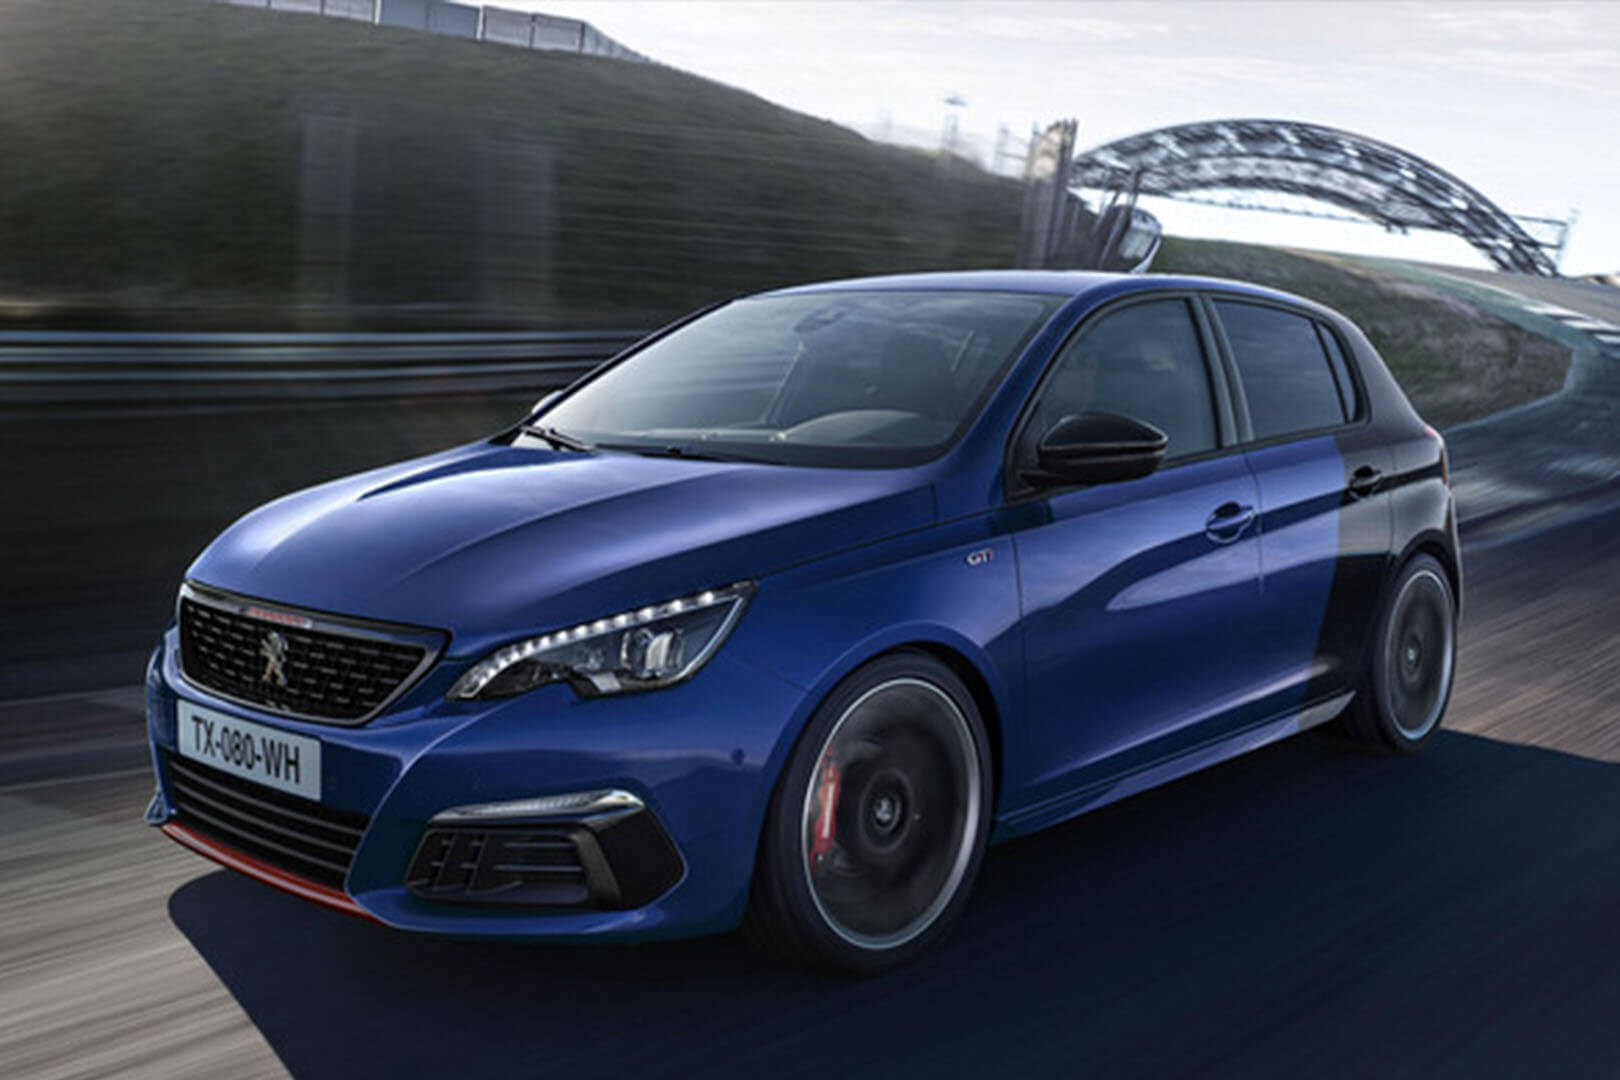 peugeot 308 gti delivers an unrivalled driving experience perth city peugeot. Black Bedroom Furniture Sets. Home Design Ideas